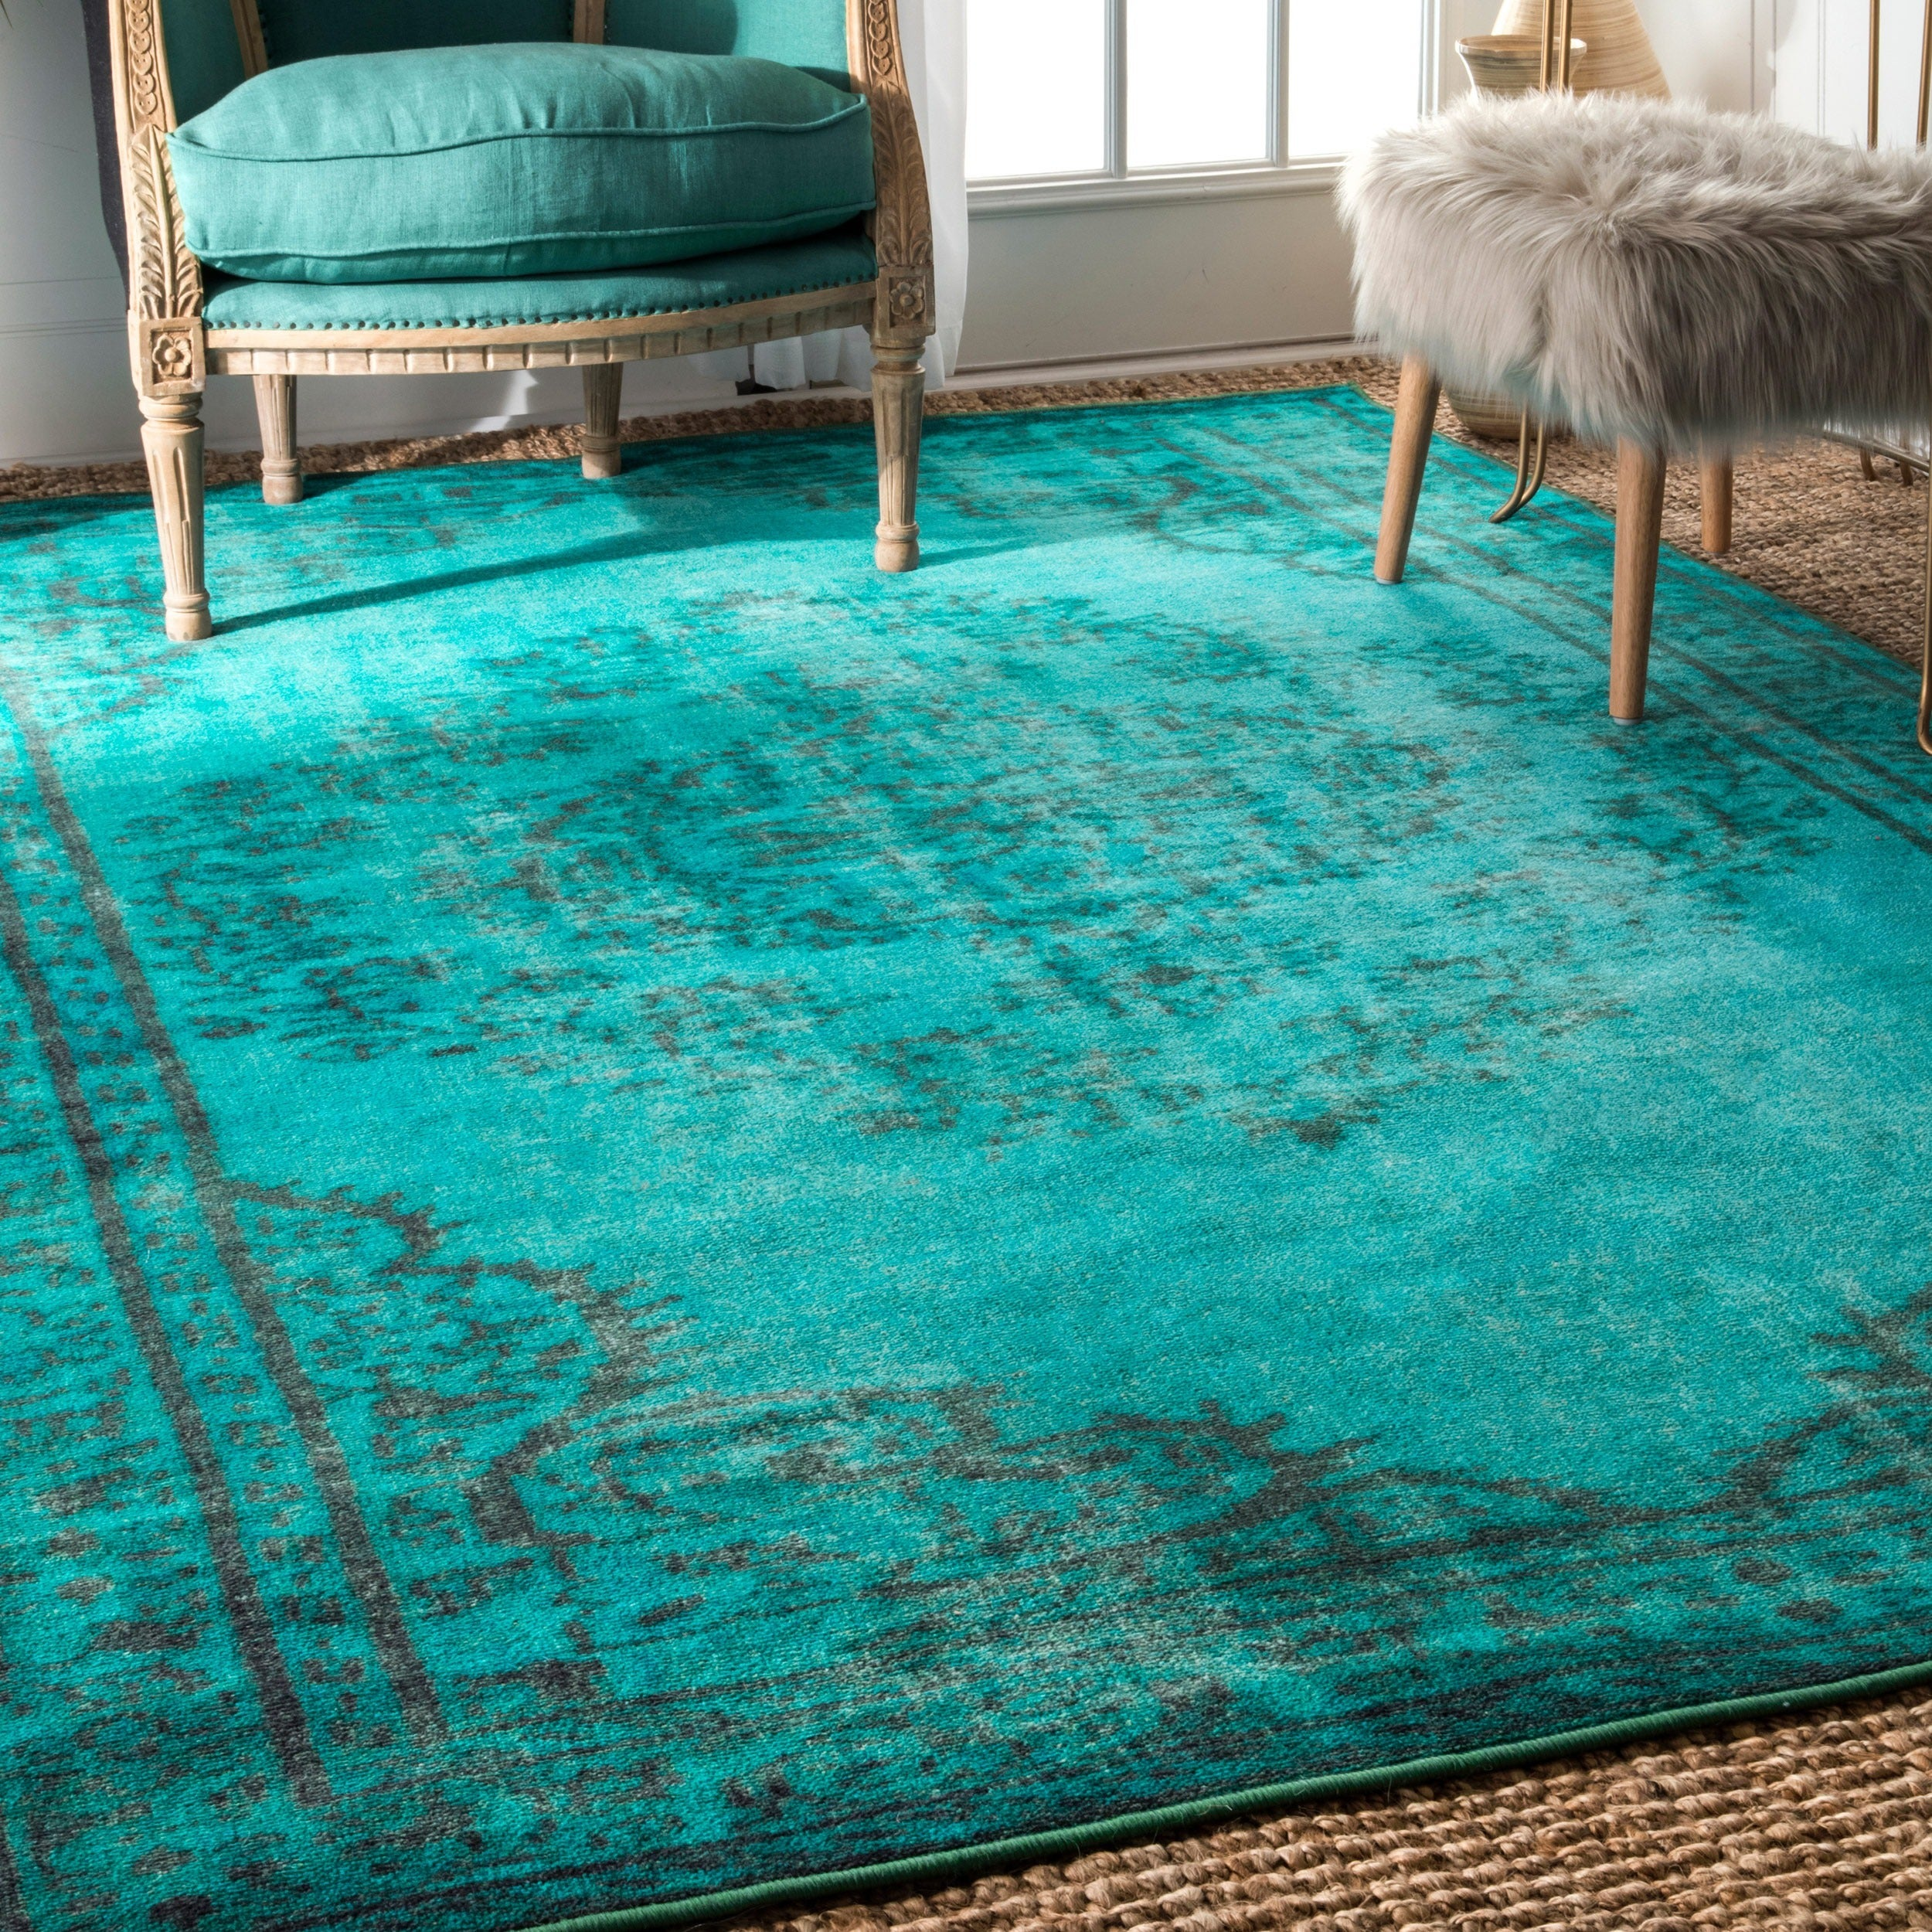 Nuloom Vintage Inspired Turquoise Overdyed Rug: Shop NuLOOM Vintage Inspired Overdyed Rug (8' X 10